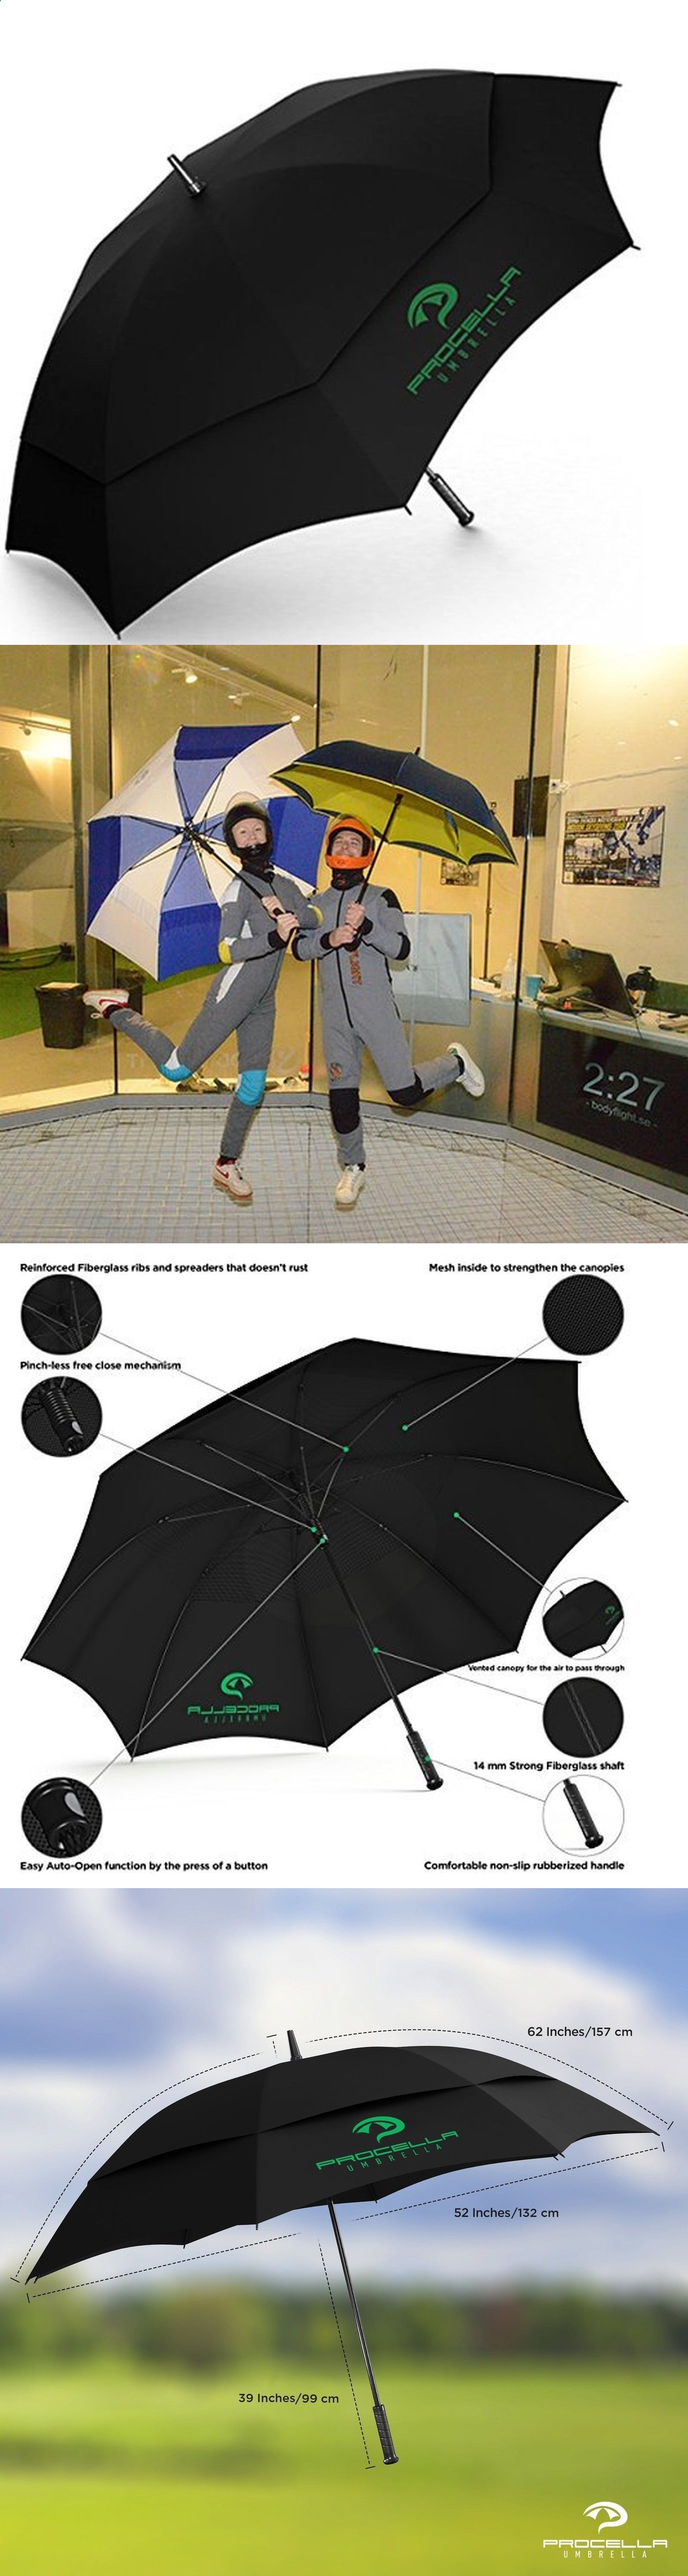 e548f9182eea5 Luwint 36   Diameter Double Layer Folding Compact UV Wind Protection  Umbrella Hat Review